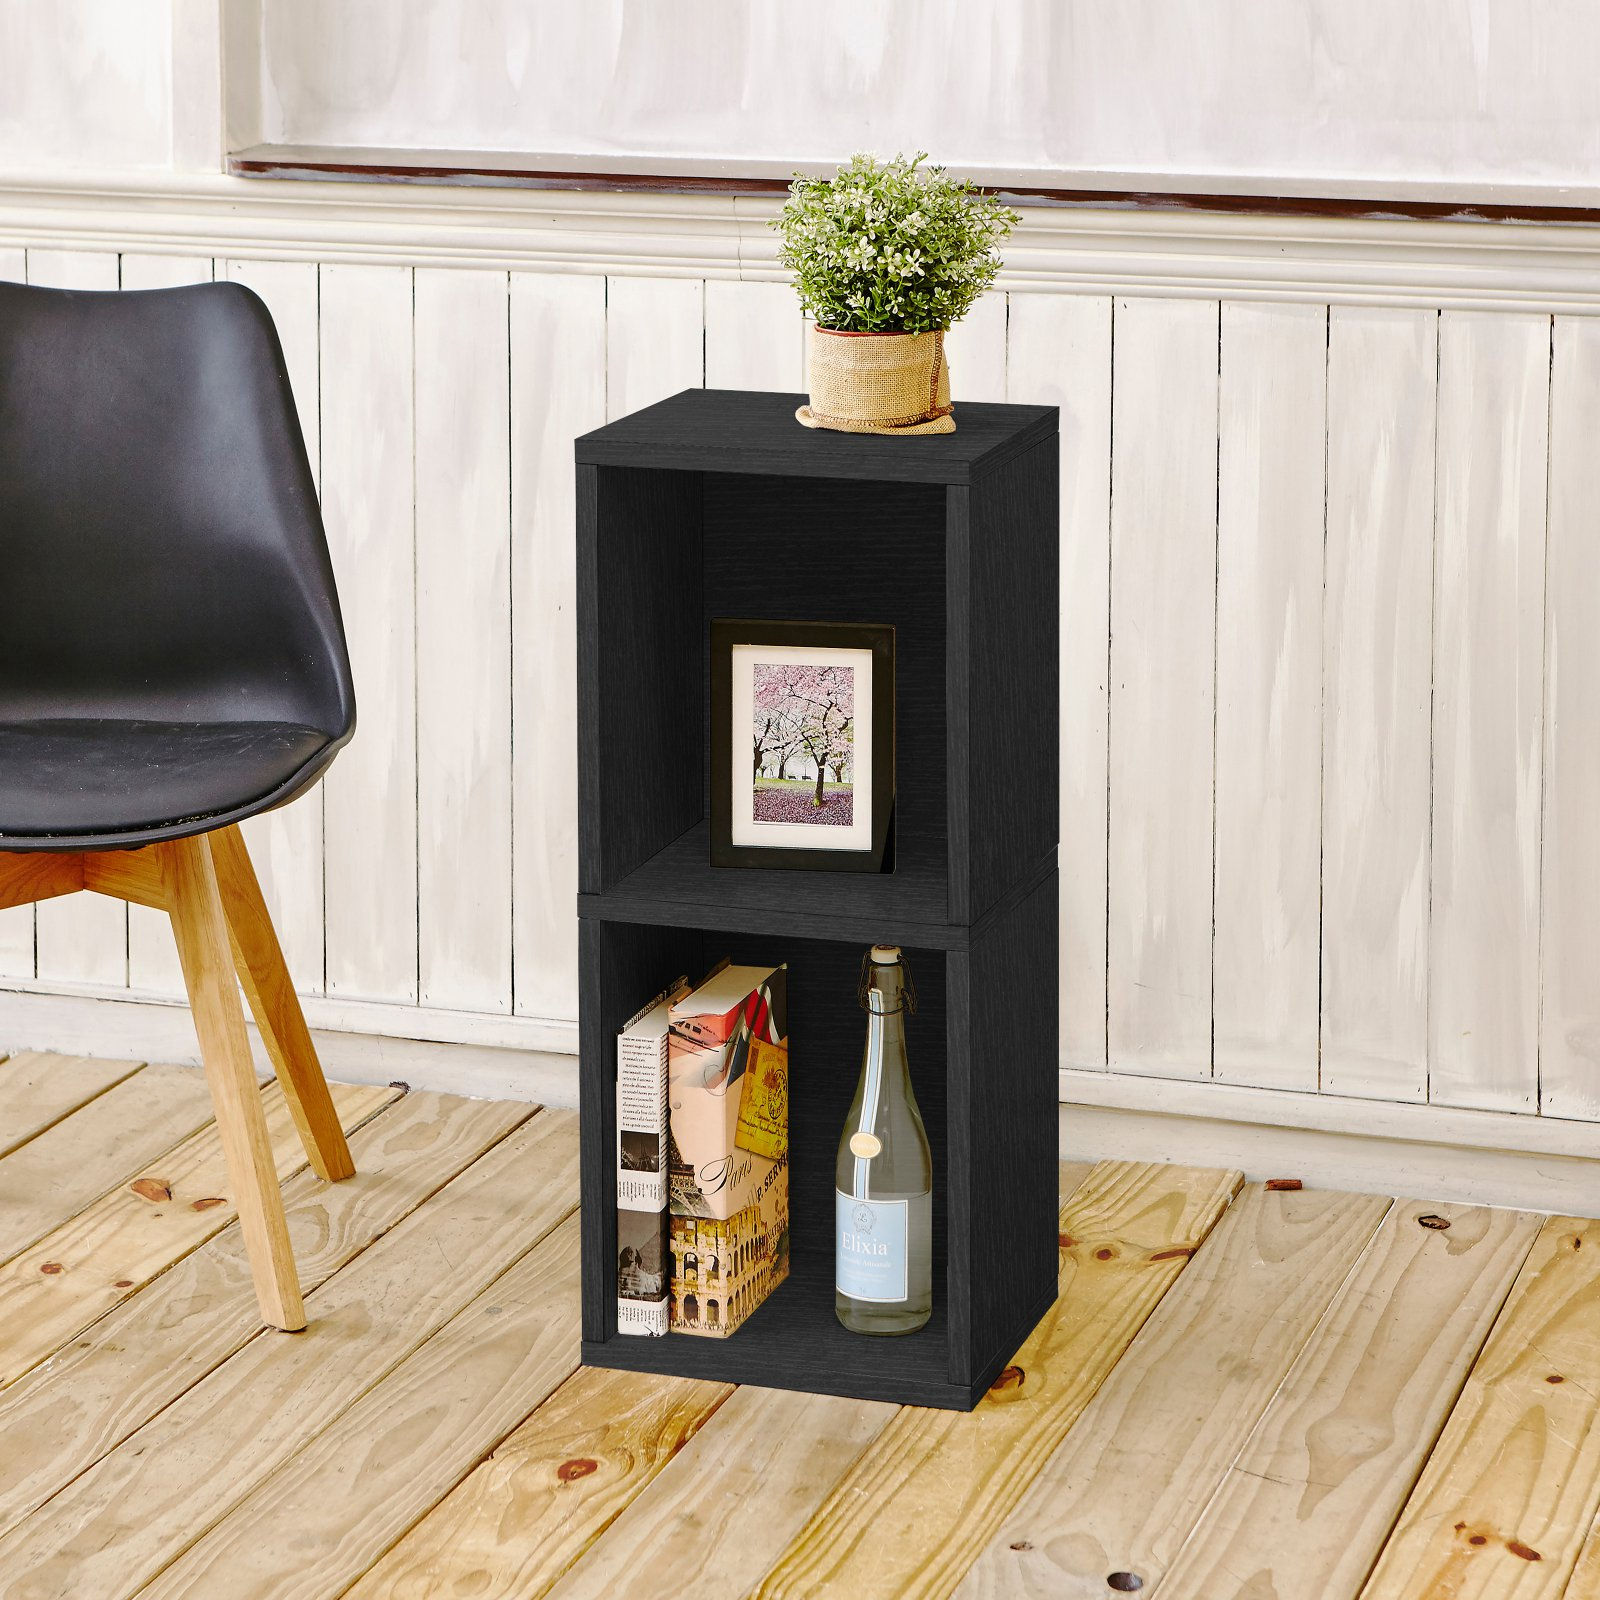 Way Basics Eco 2 Shelf Double Cube Plus Narrow Bookcase and Storage Shelf, Black